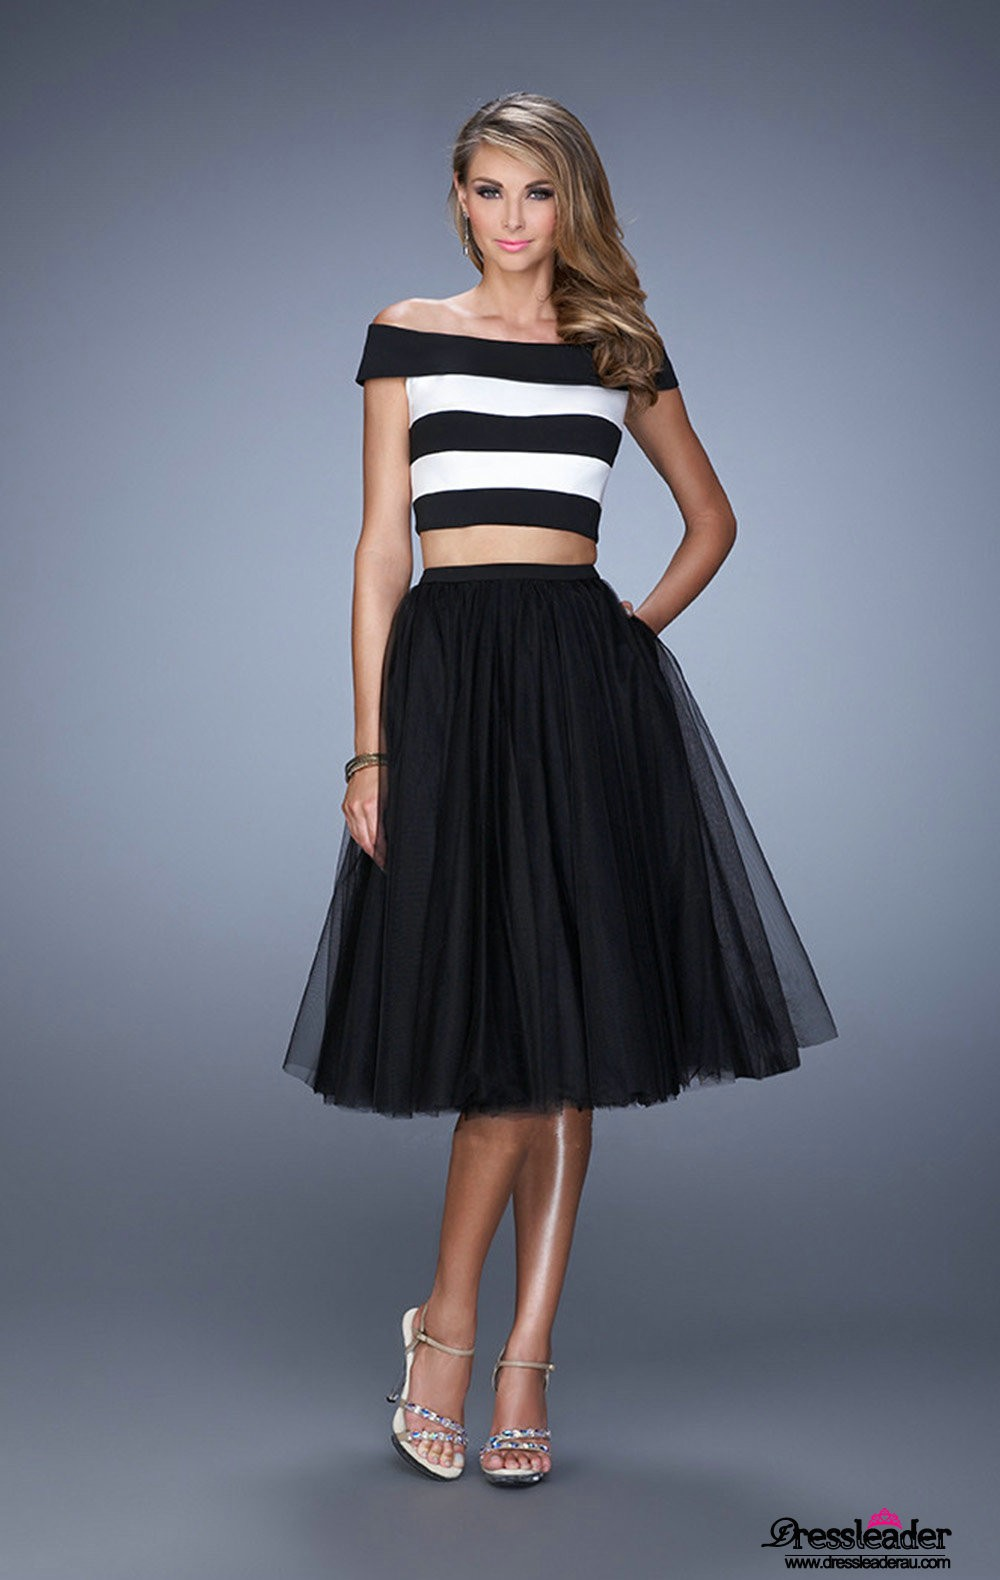 Skirt And Top Formal Wear